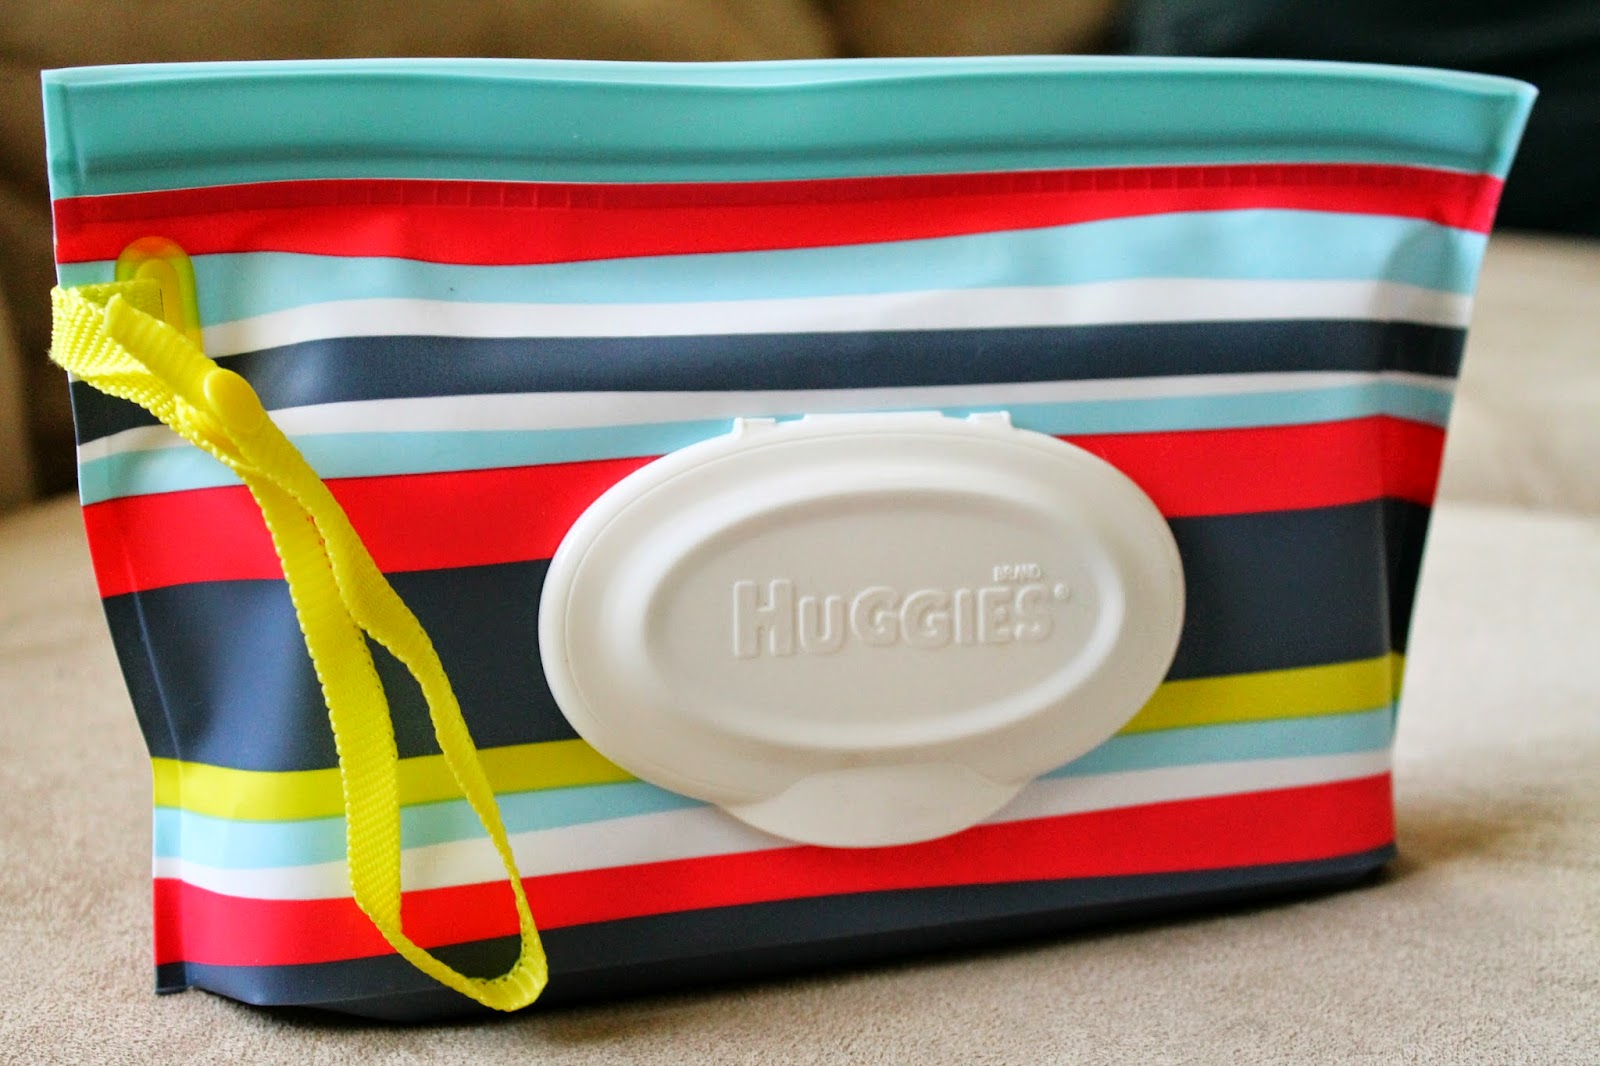 The Clutch Comes With A Fun Strap Making It Versatile And Accessible Anywhere From Diaper Bag Stroller To Car Seat Handle More